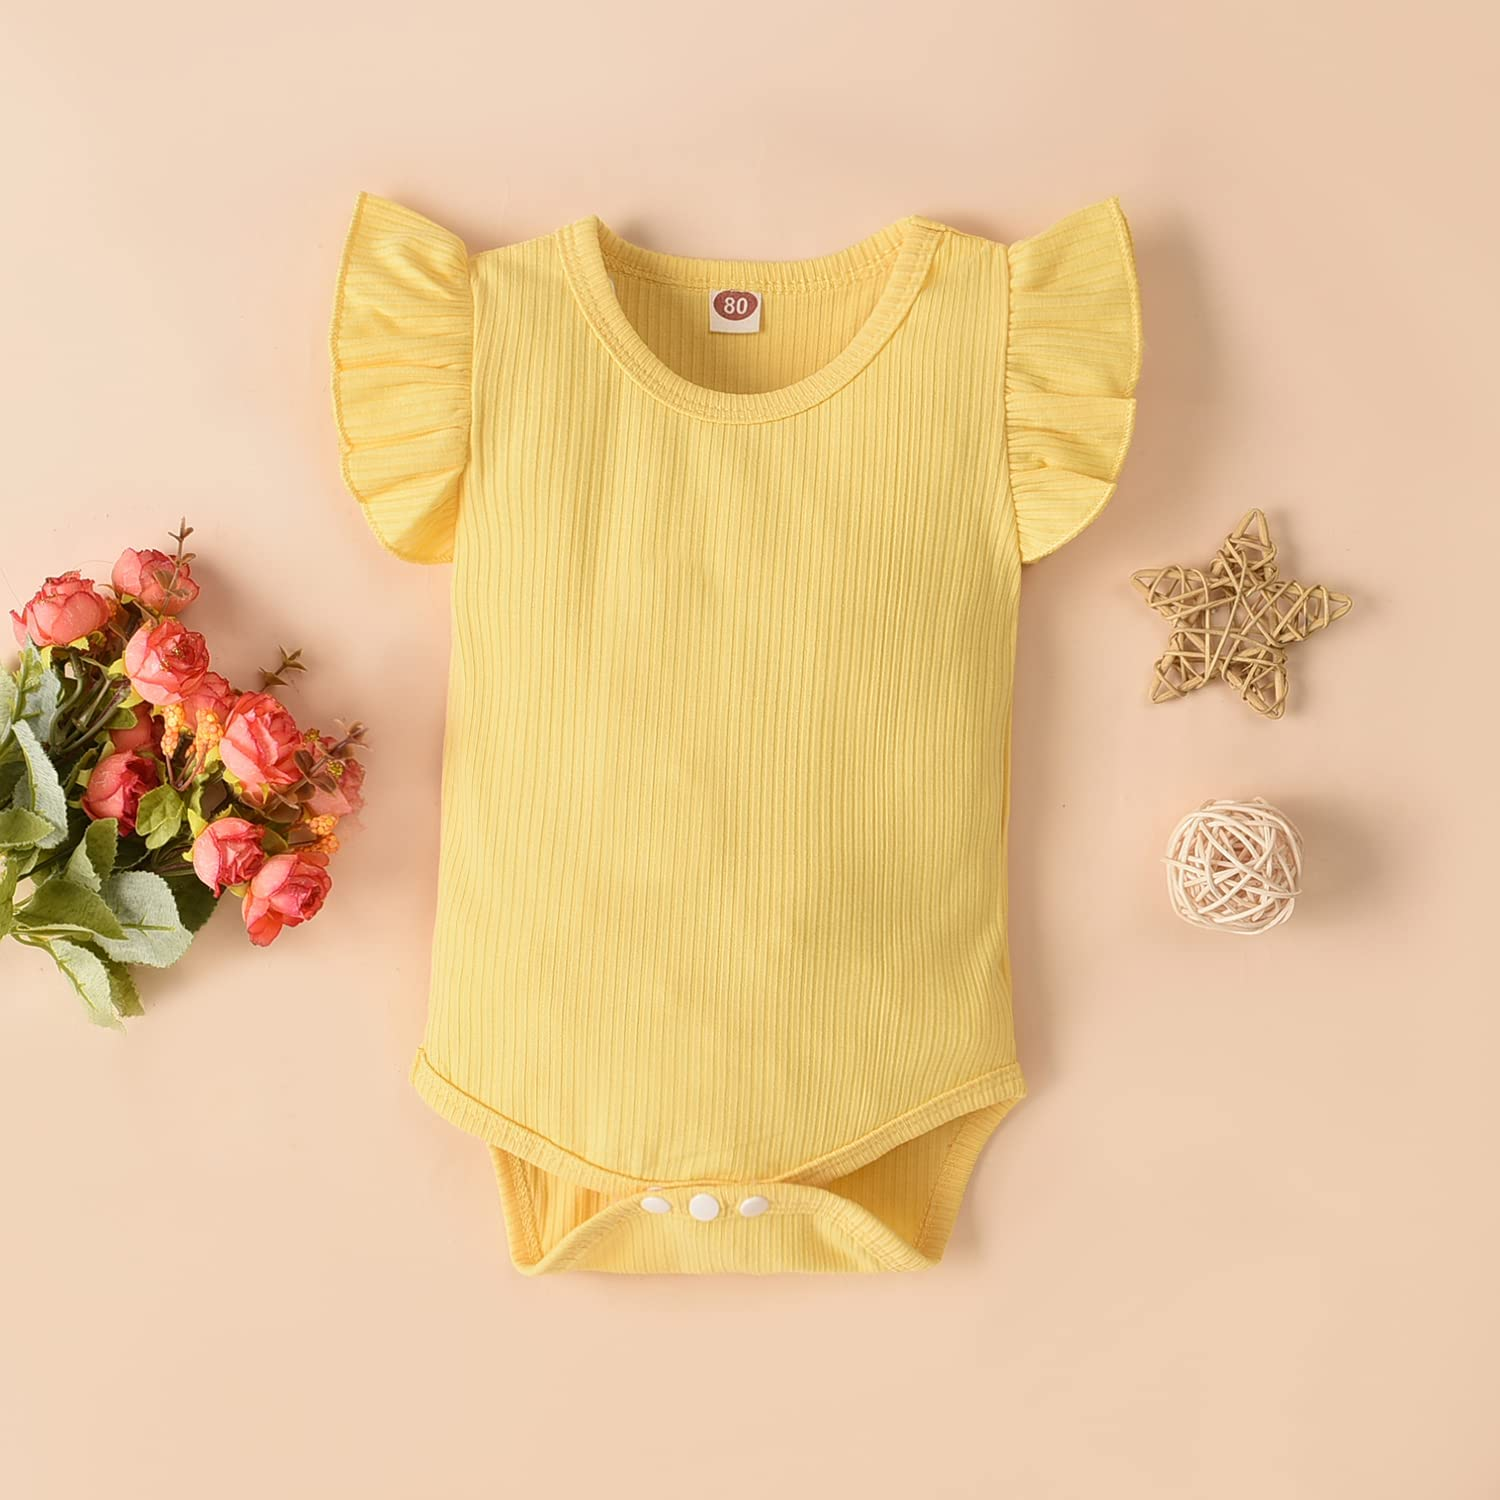 Infant Newborn Baby Girl Floral Summer Outfits Ruffle Short Sleeve Ribbed Romper Suspender Shorts Set with Headband